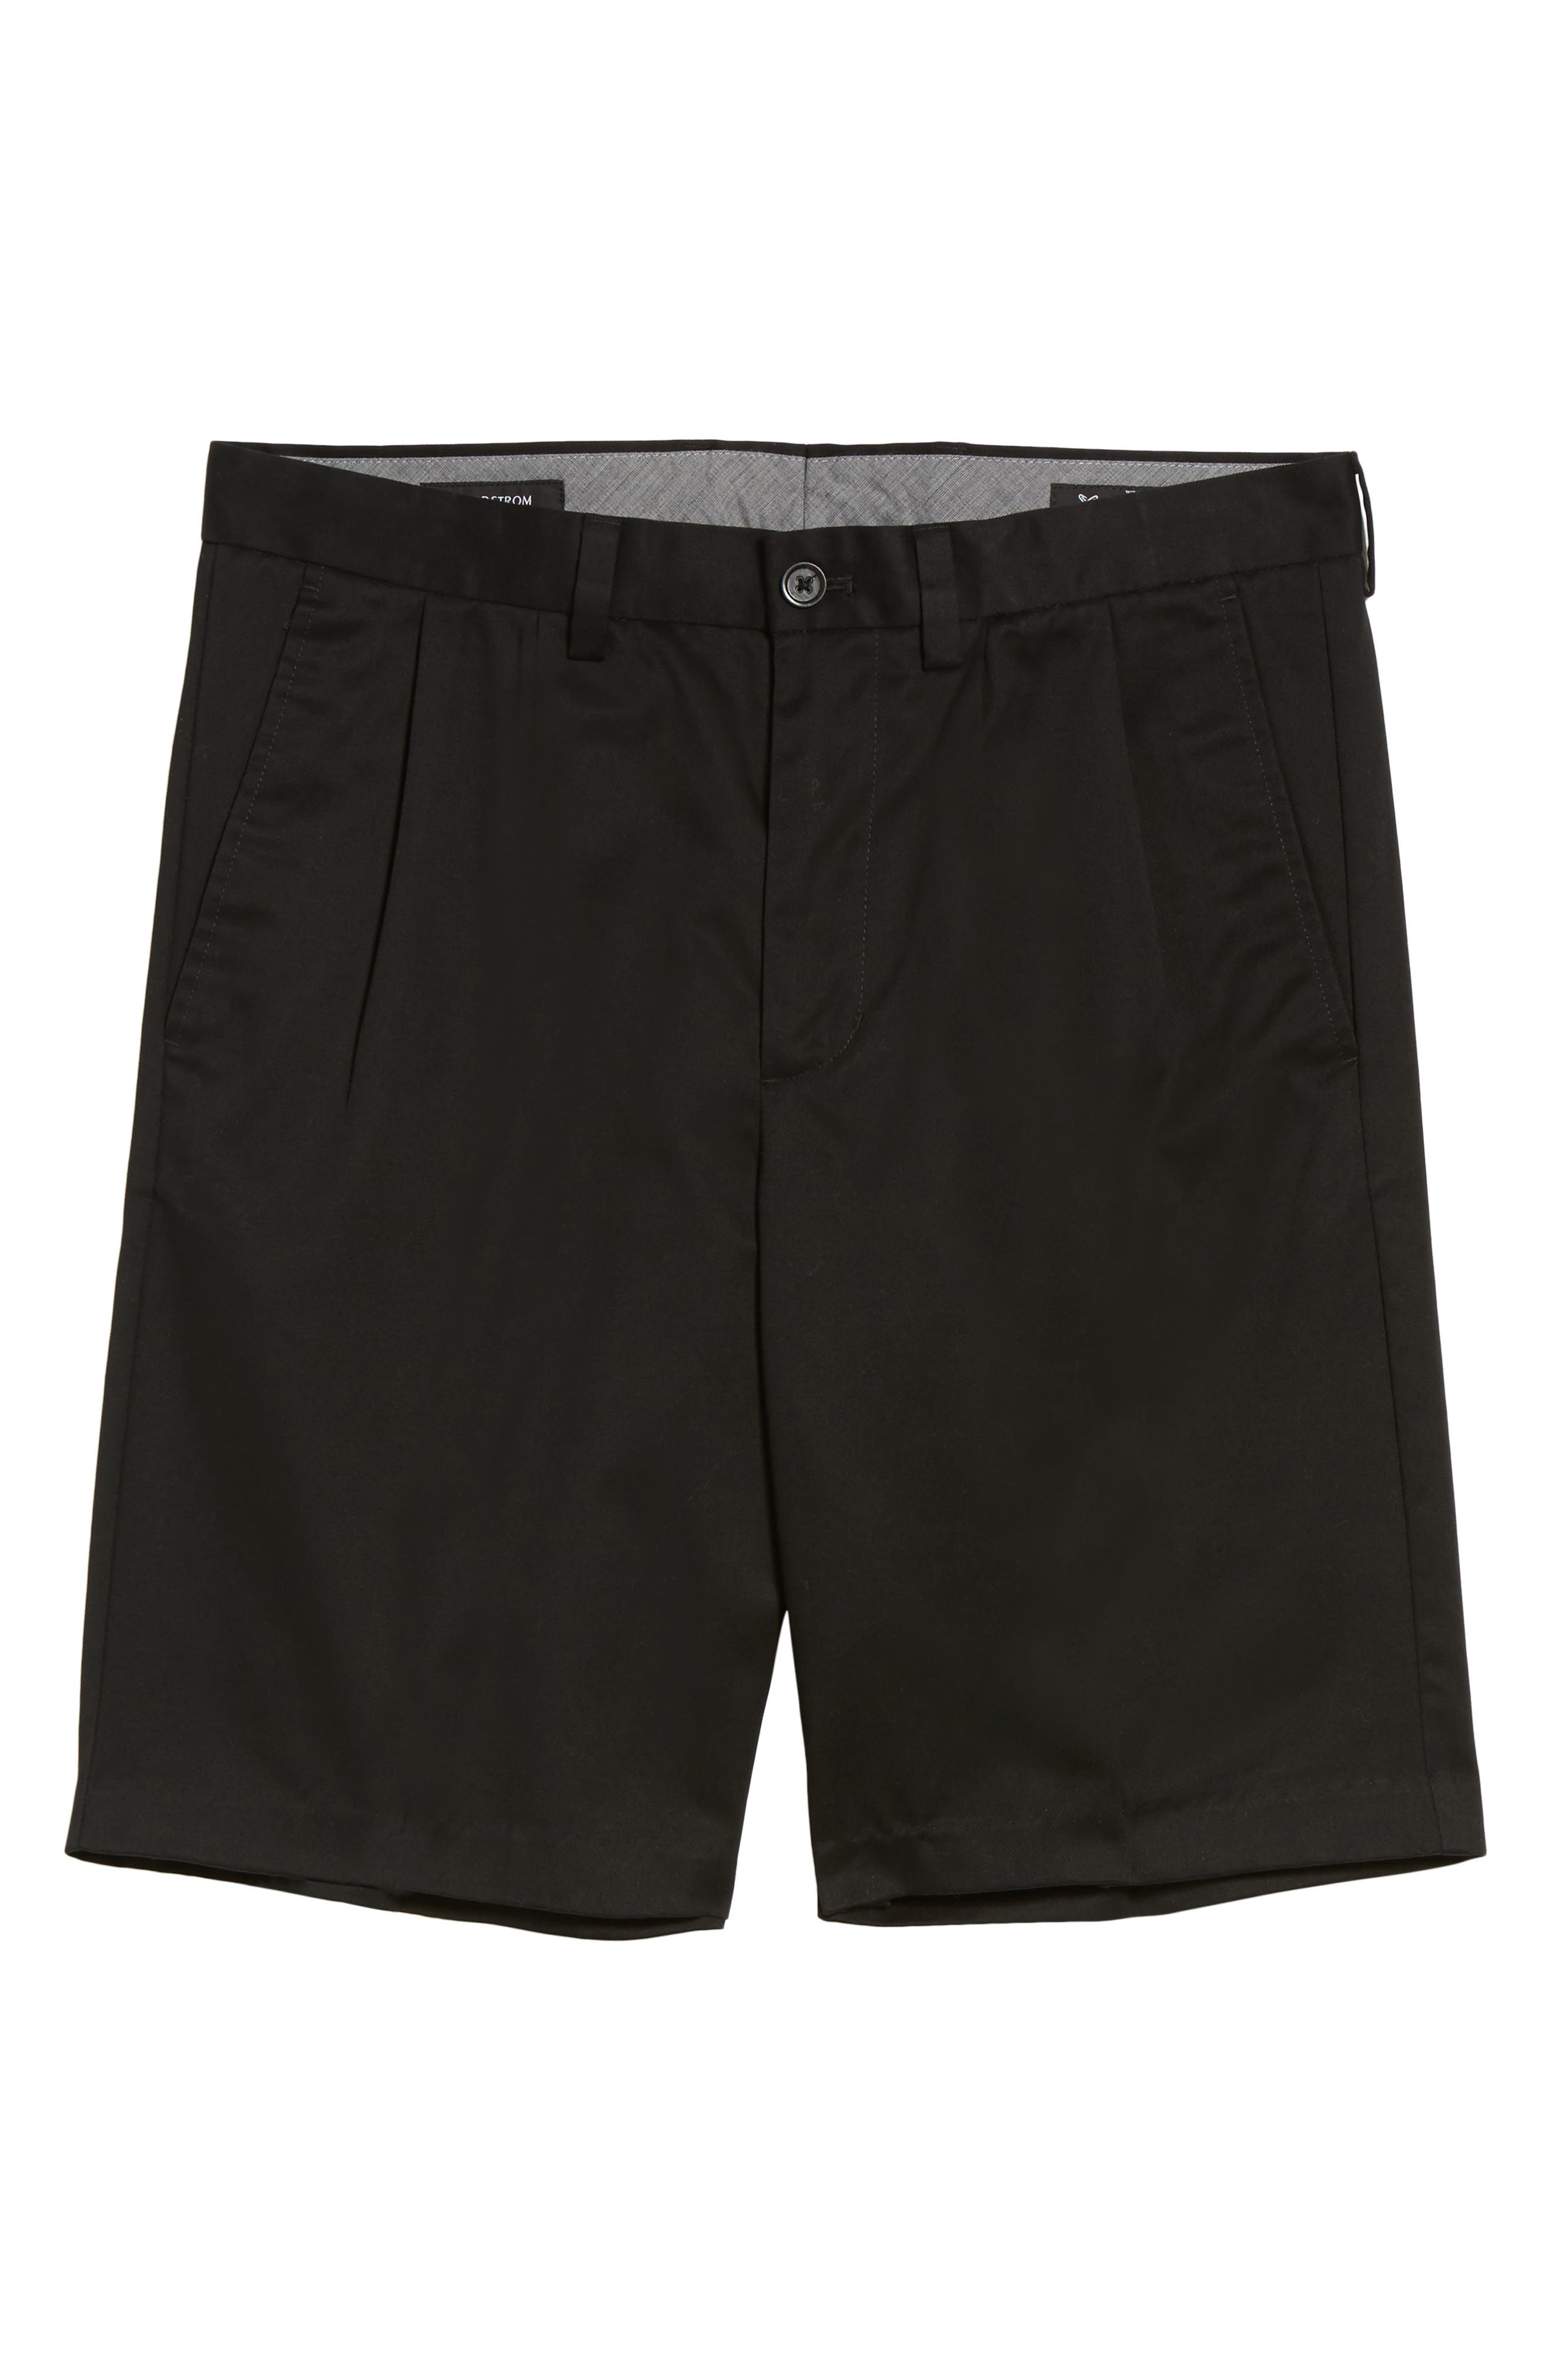 Smartcare<sup>™</sup> Pleated Shorts,                             Alternate thumbnail 2, color,                             BLACK